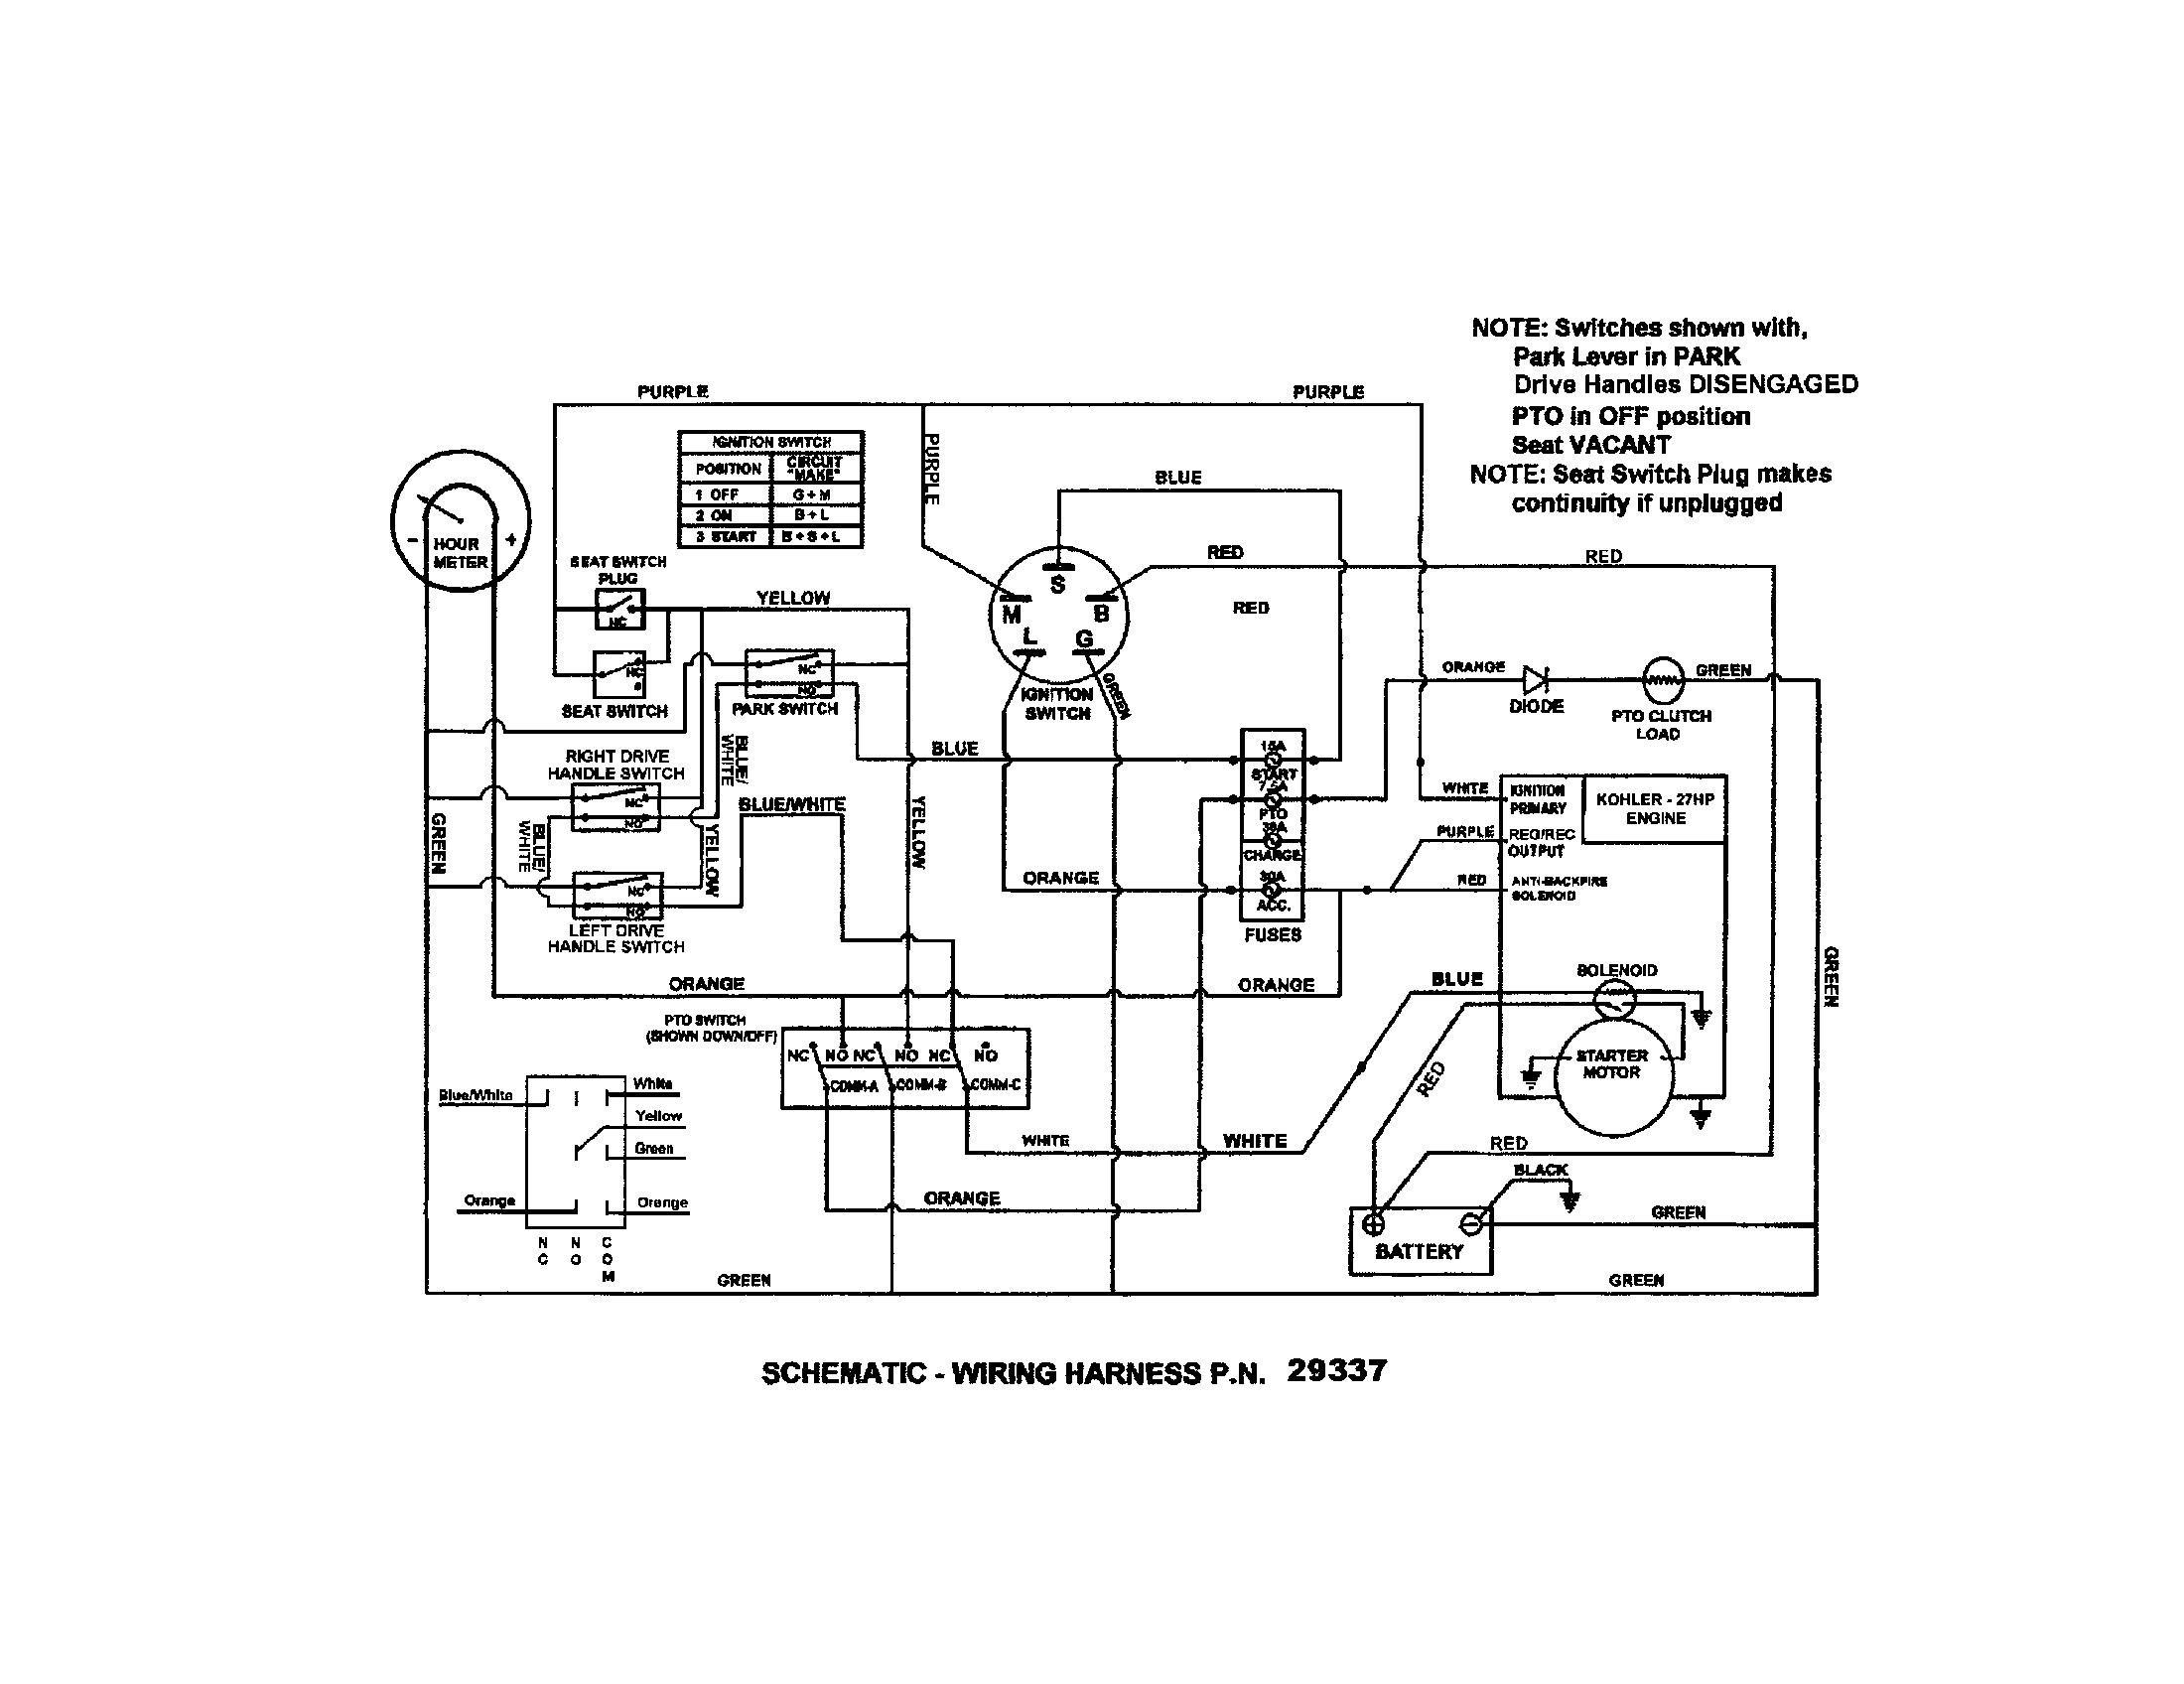 Kohler Engine Wiring Diagram Kohler Ignition Switch Wiring Diagram Refrence New Wiring Diagram Of Kohler Engine Wiring Diagram